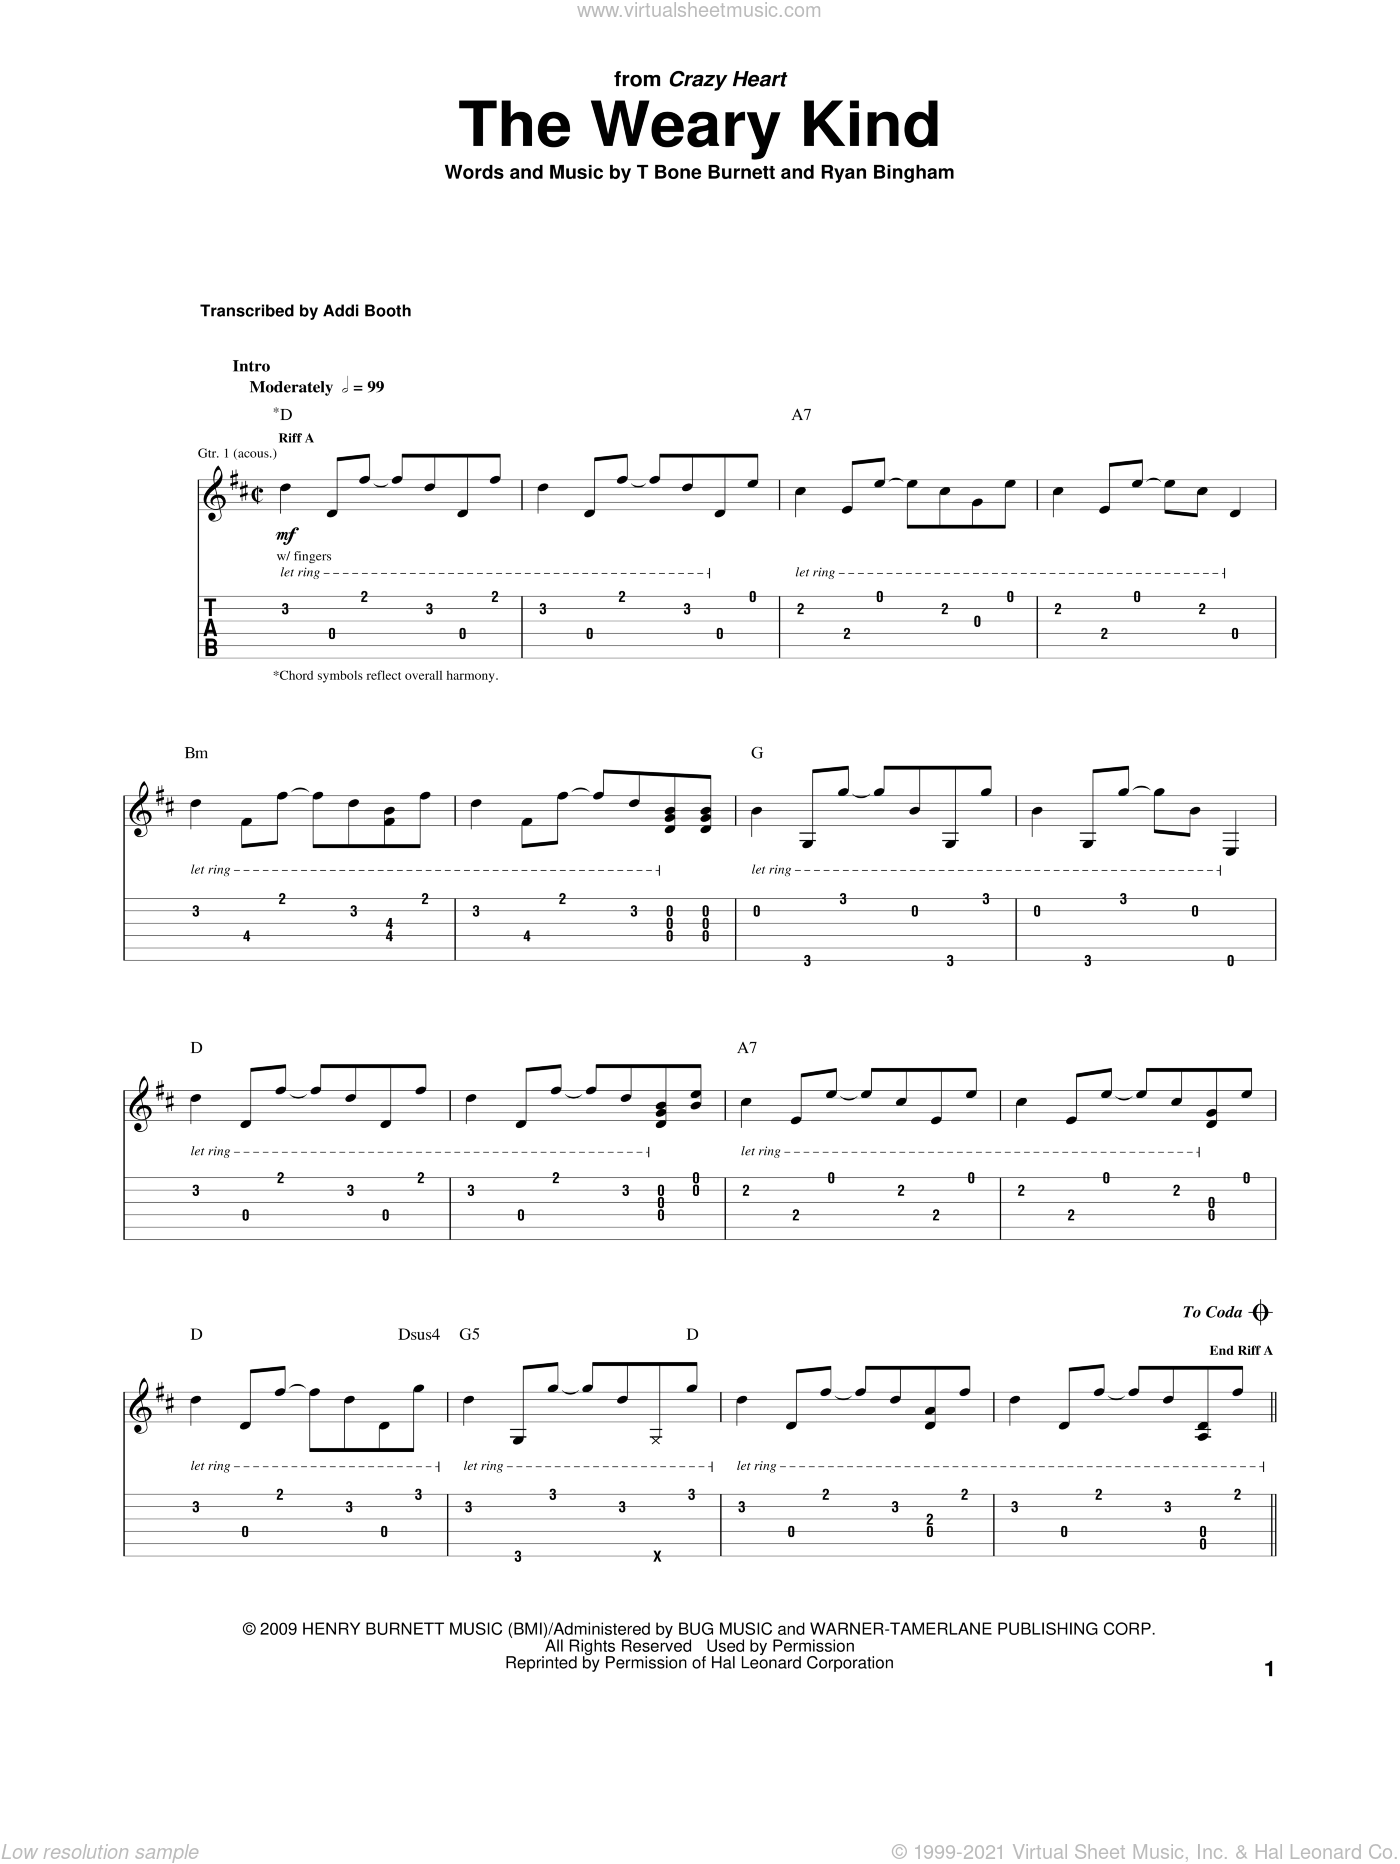 The Weary Kind (Theme From Crazy Heart) sheet music for guitar (tablature) by Ryan Bingham and T-Bone Burnett. Score Image Preview.